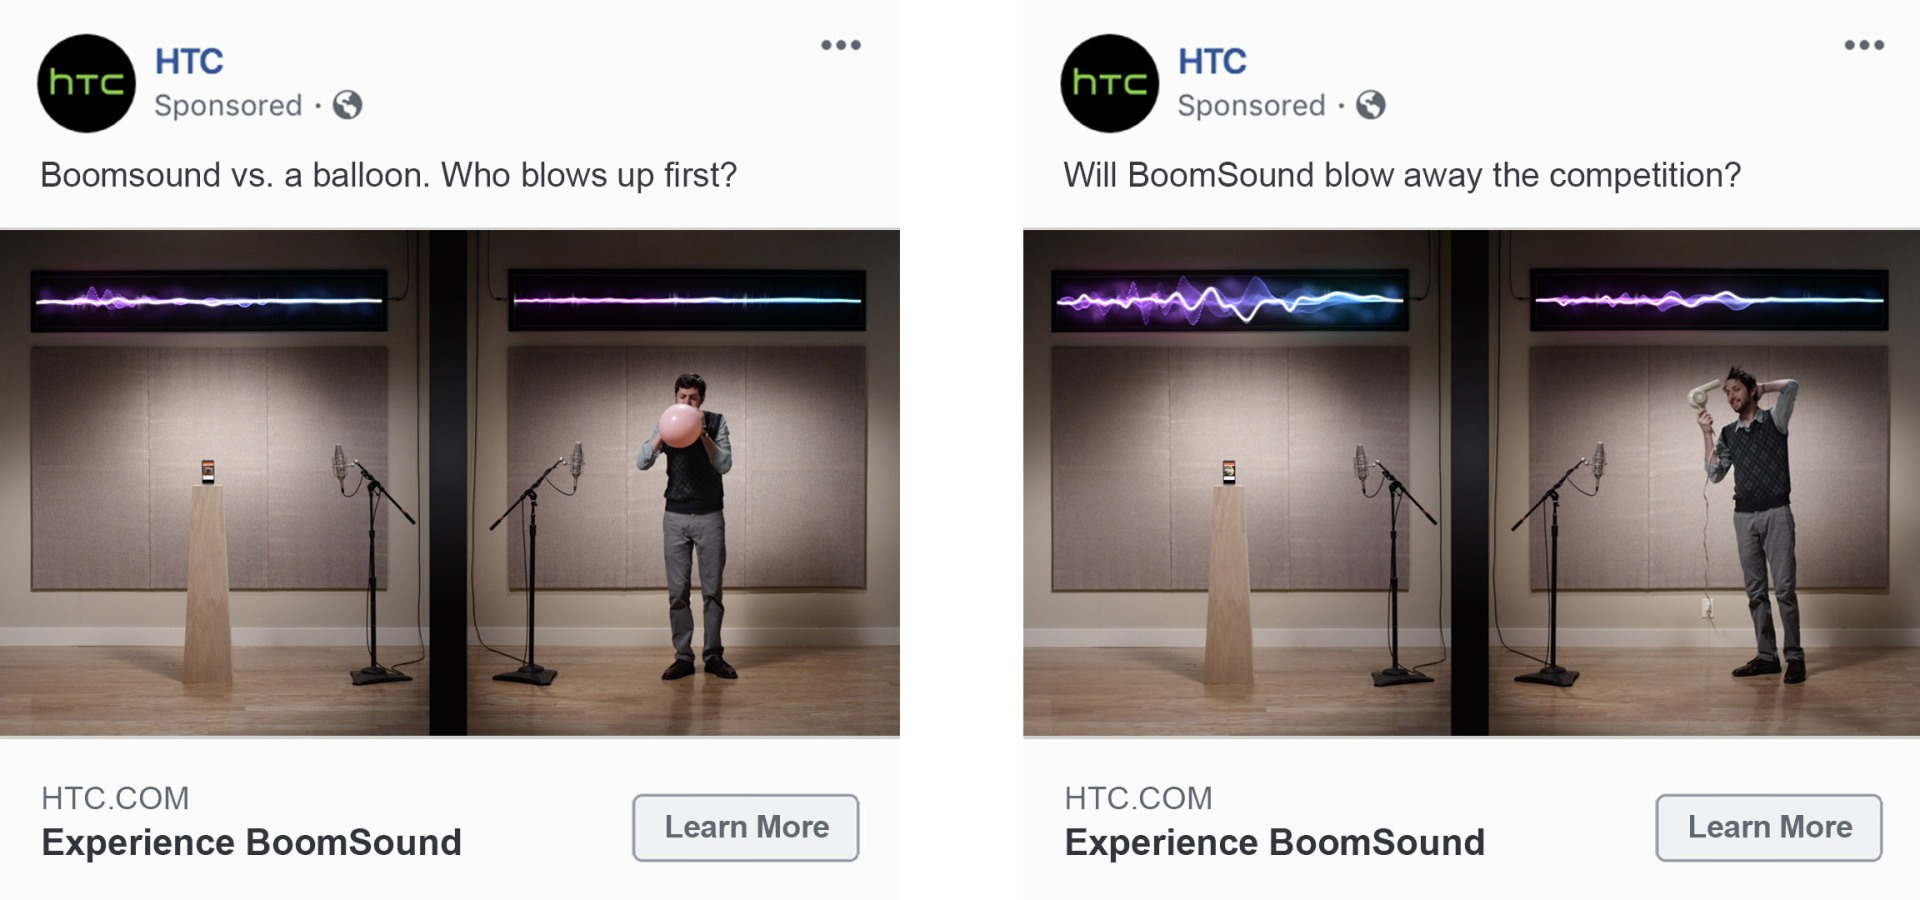 htc_social_two_ads